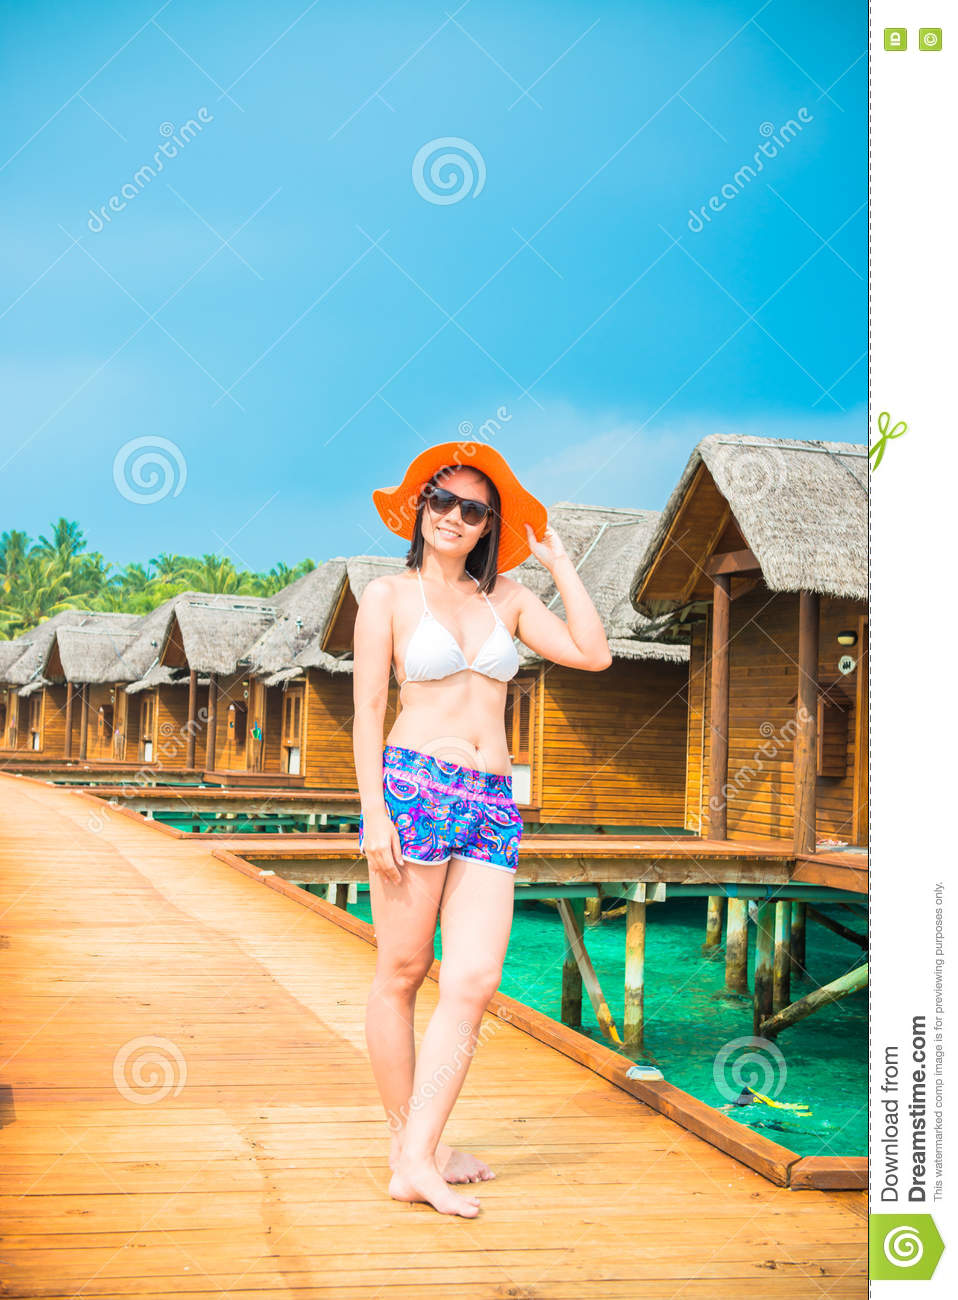 Woman is relaxing on the water bangalow of the tropical beach